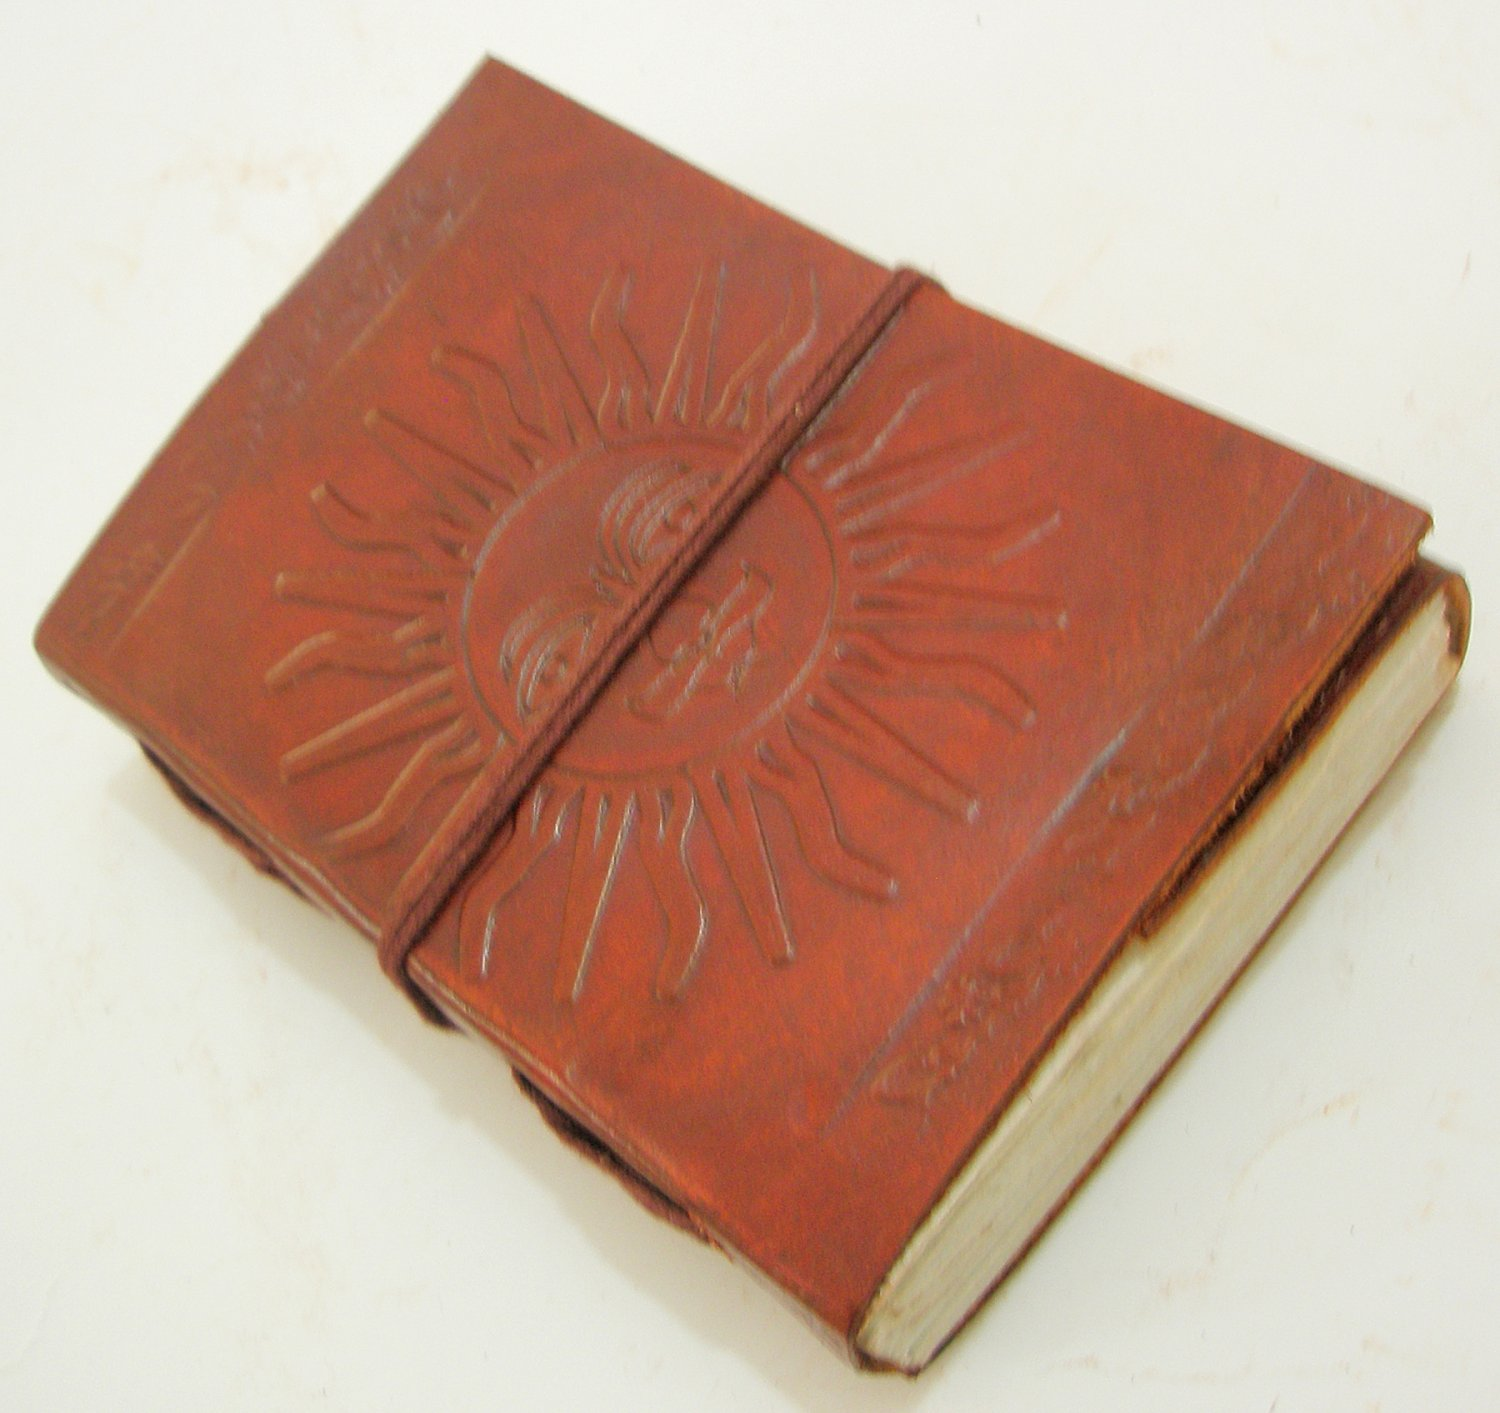 Handcrafted SUN Embossed Leather Journal Handmade Paper Blank Travel Diary Writing Notebook